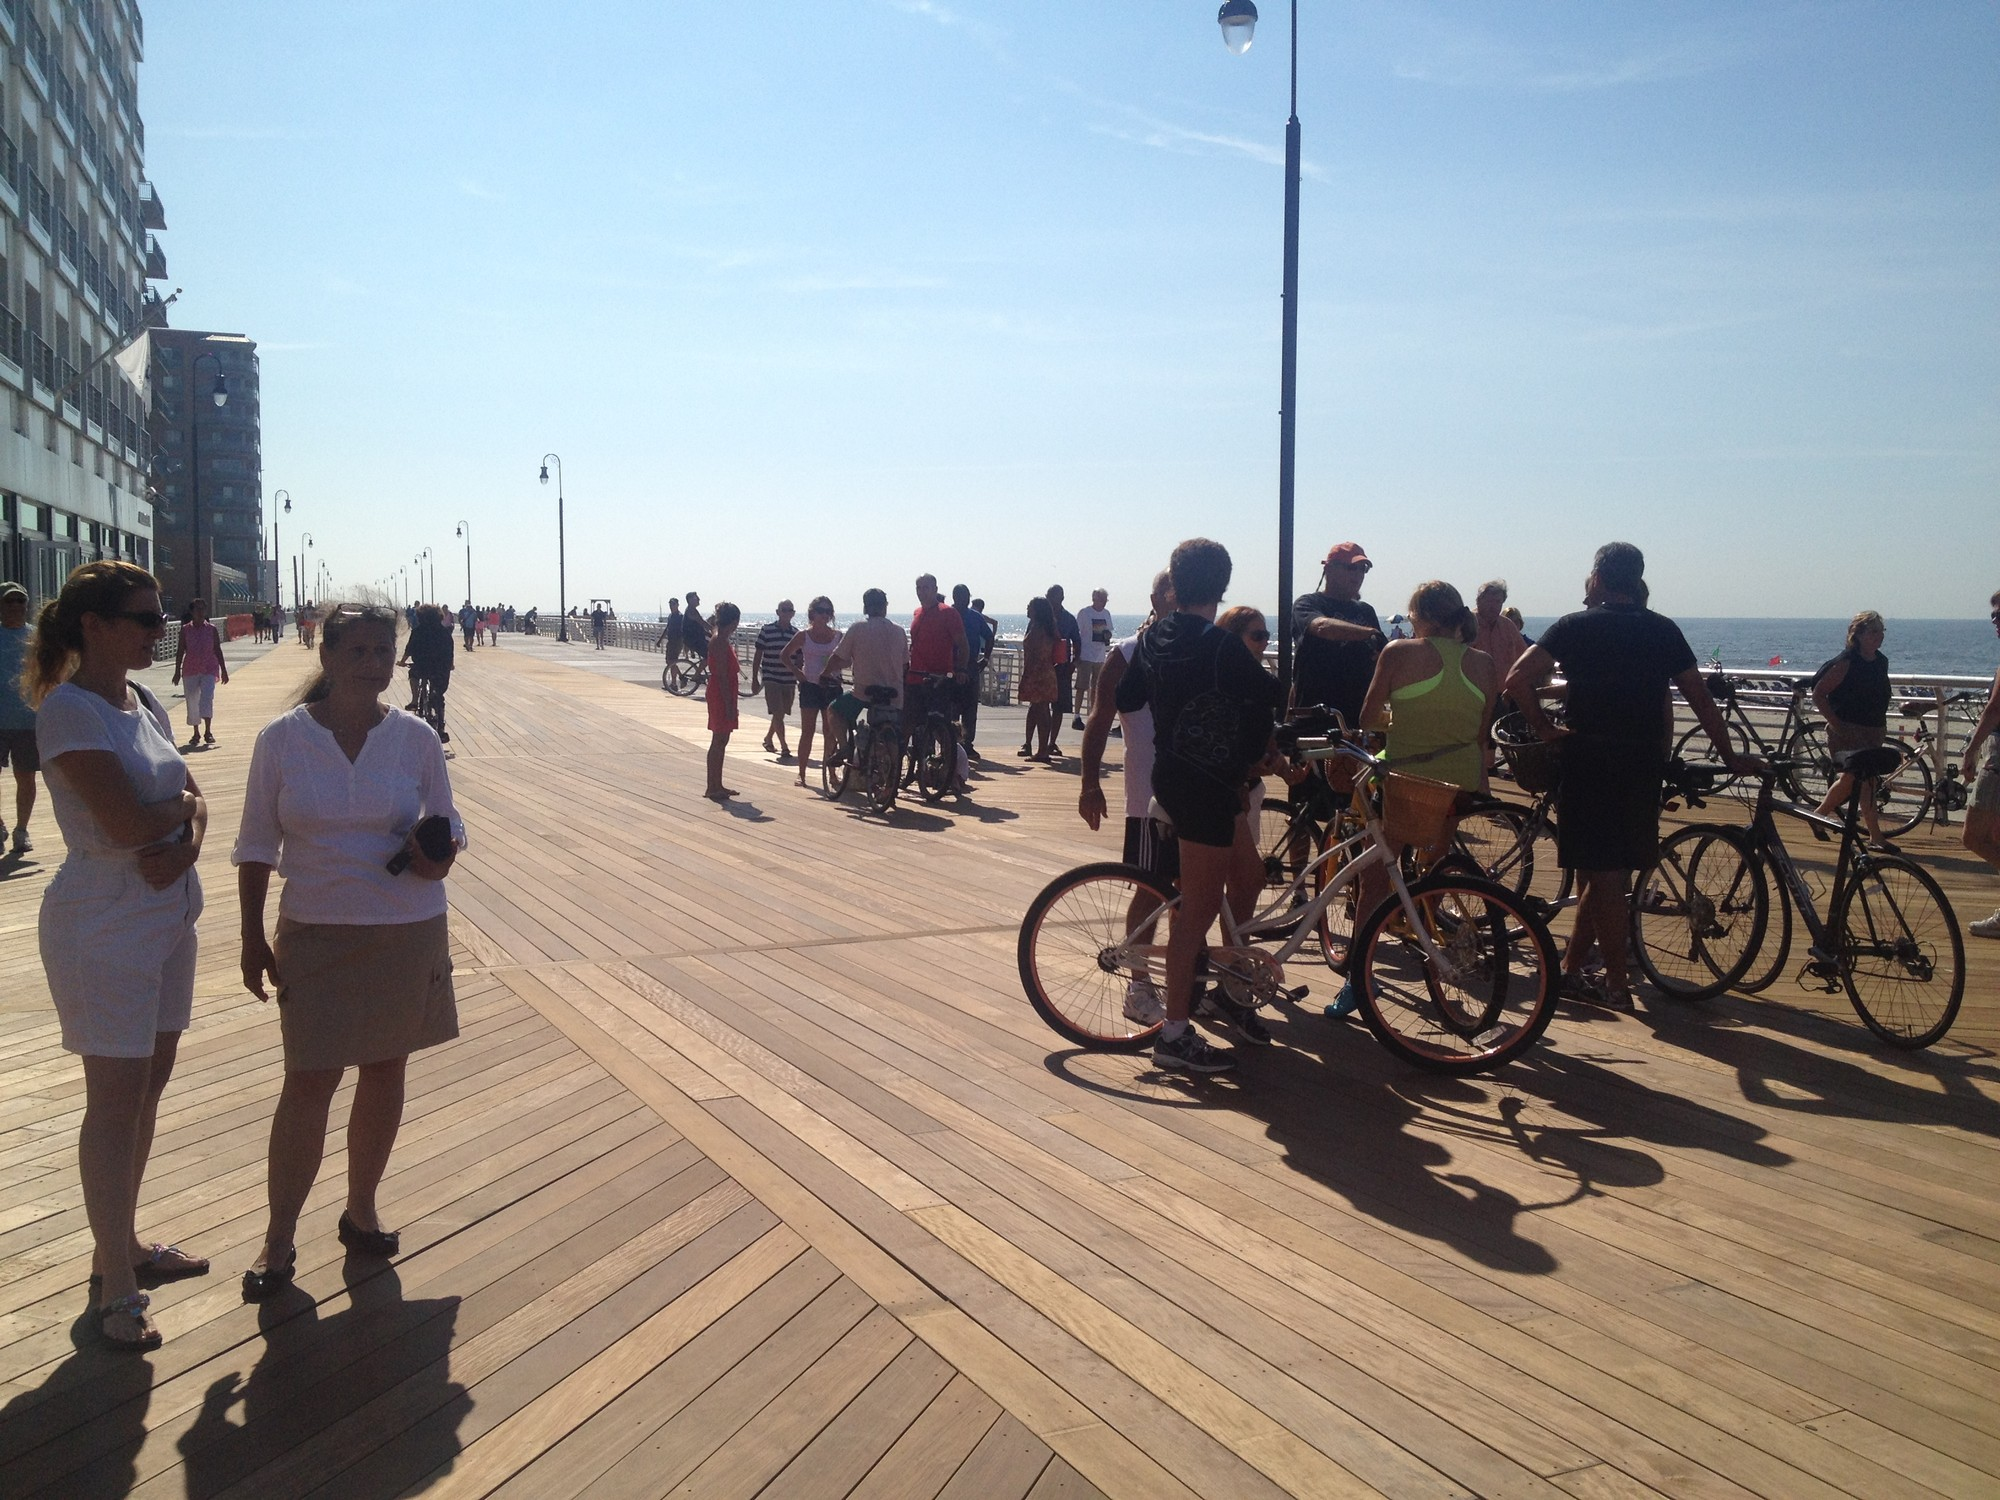 Hundreds gathered on the new boardwalk on Saturday.